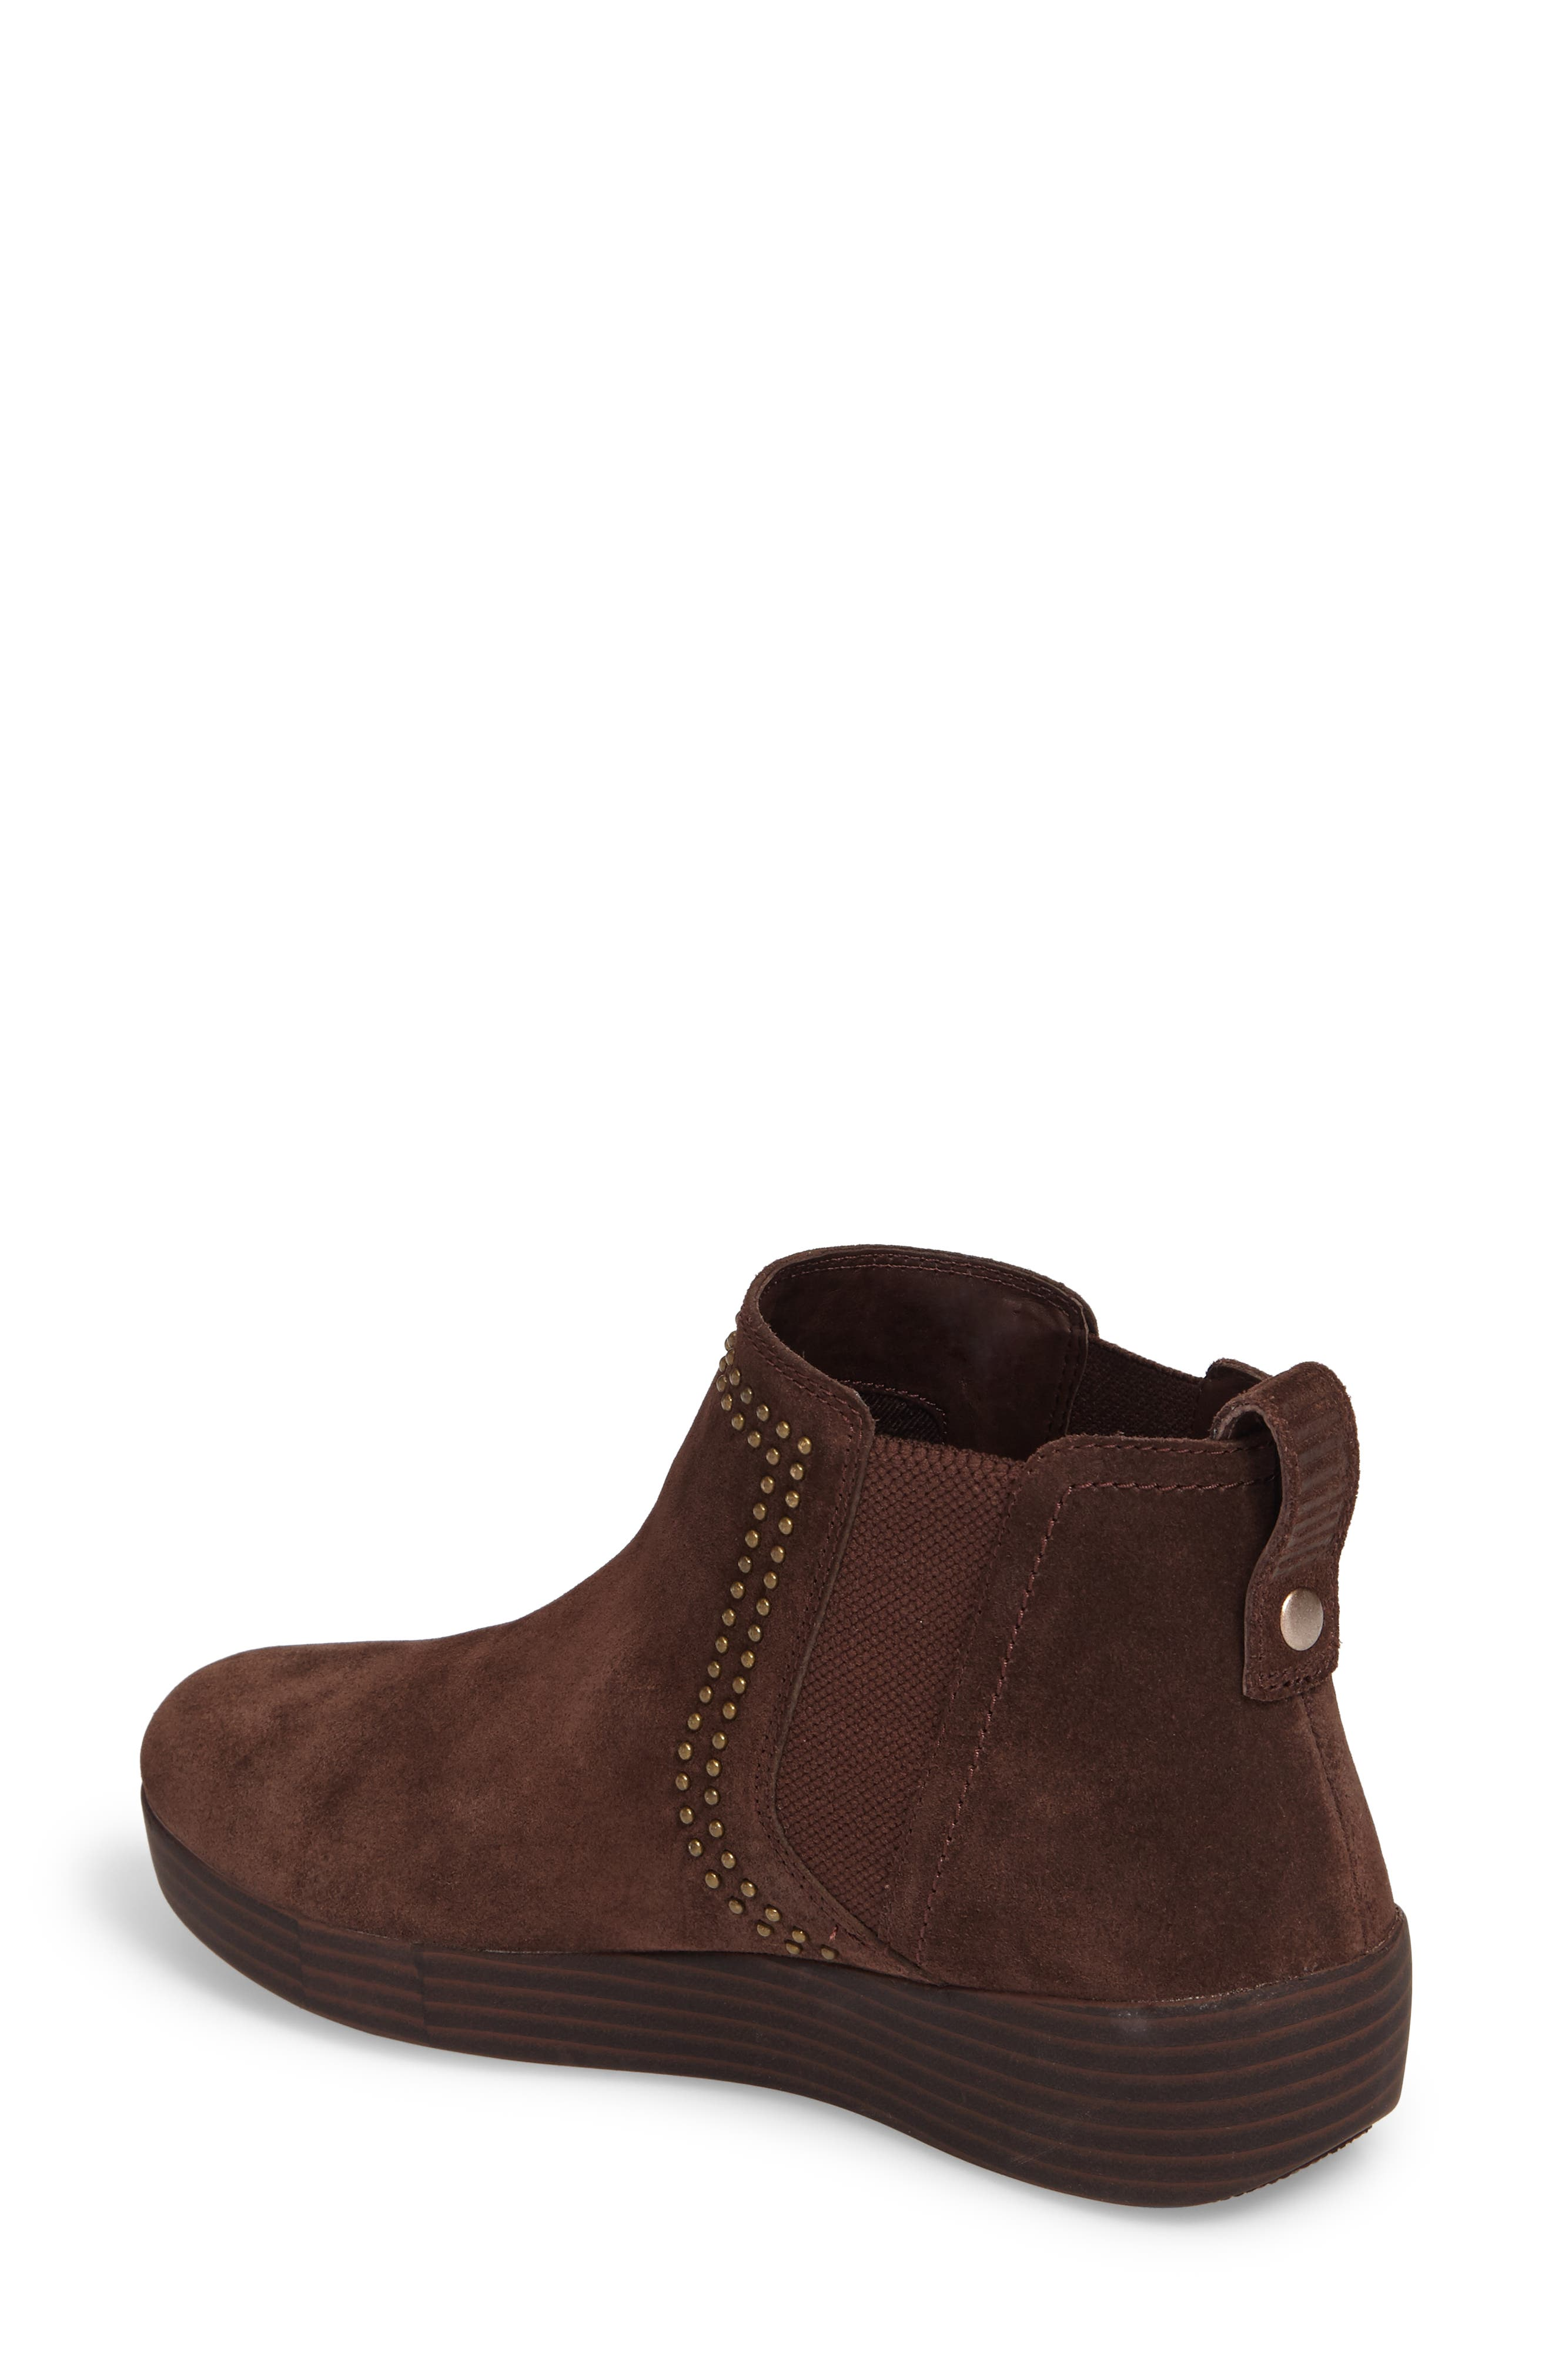 Superchelsea Studded Boot,                             Alternate thumbnail 2, color,                             Chocolate